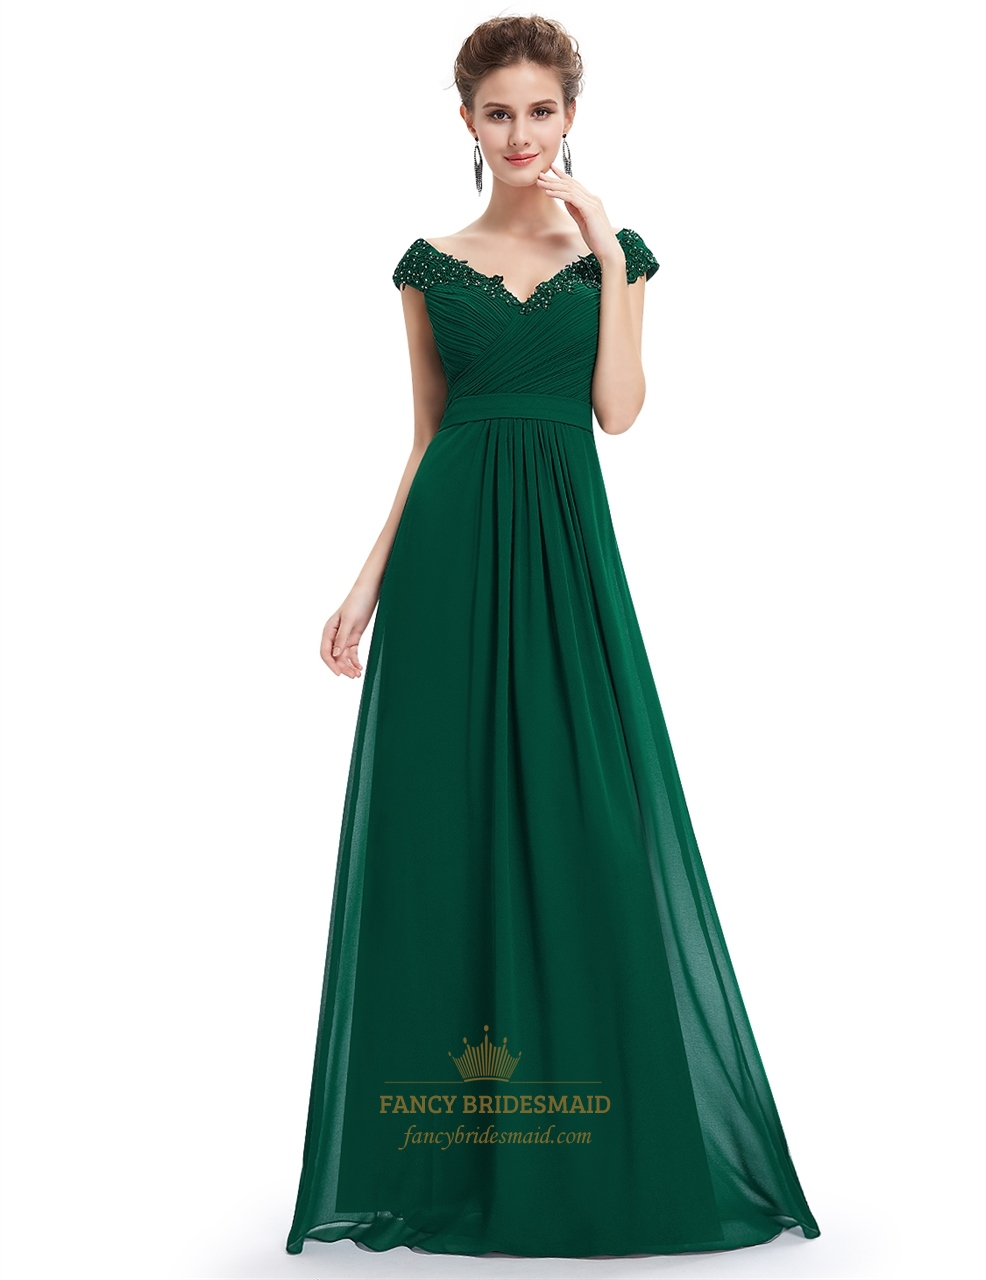 Fullsize Of Green Bridesmaid Dresses